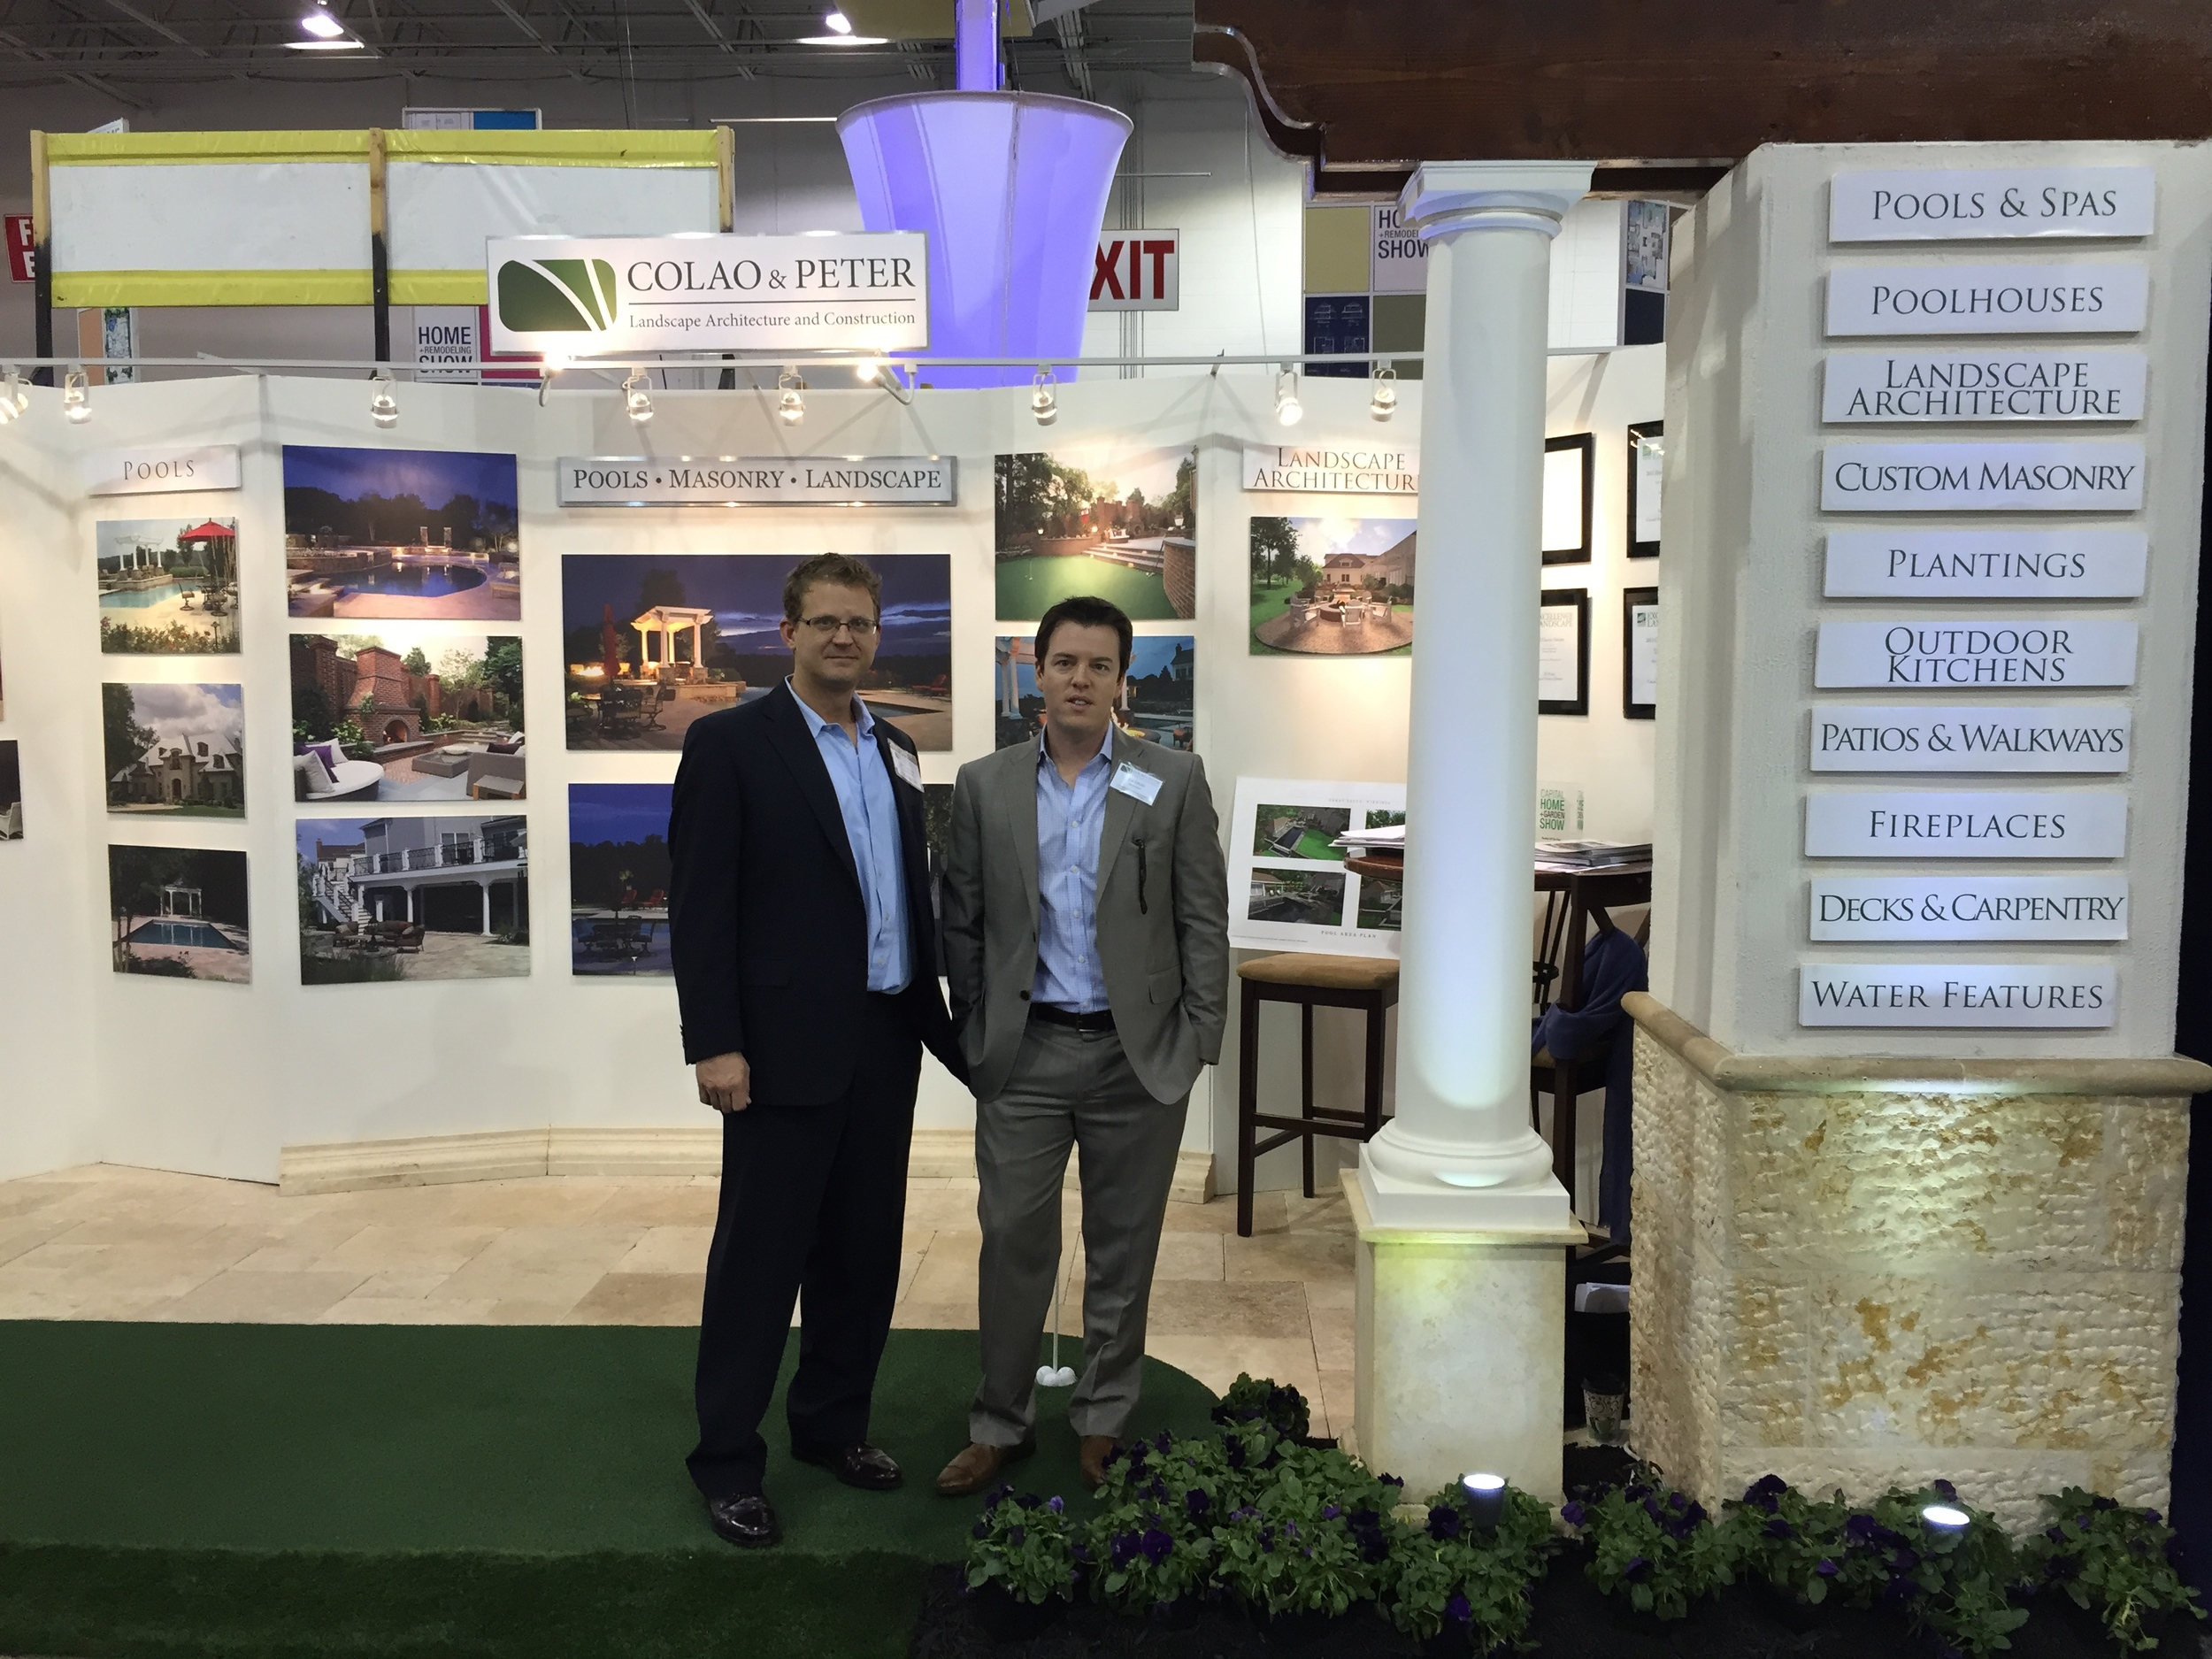 Joe Colao and Judd Youngman attendeding exhibiting for Colao And Peter and the Hone Show in Dulles Virginia.